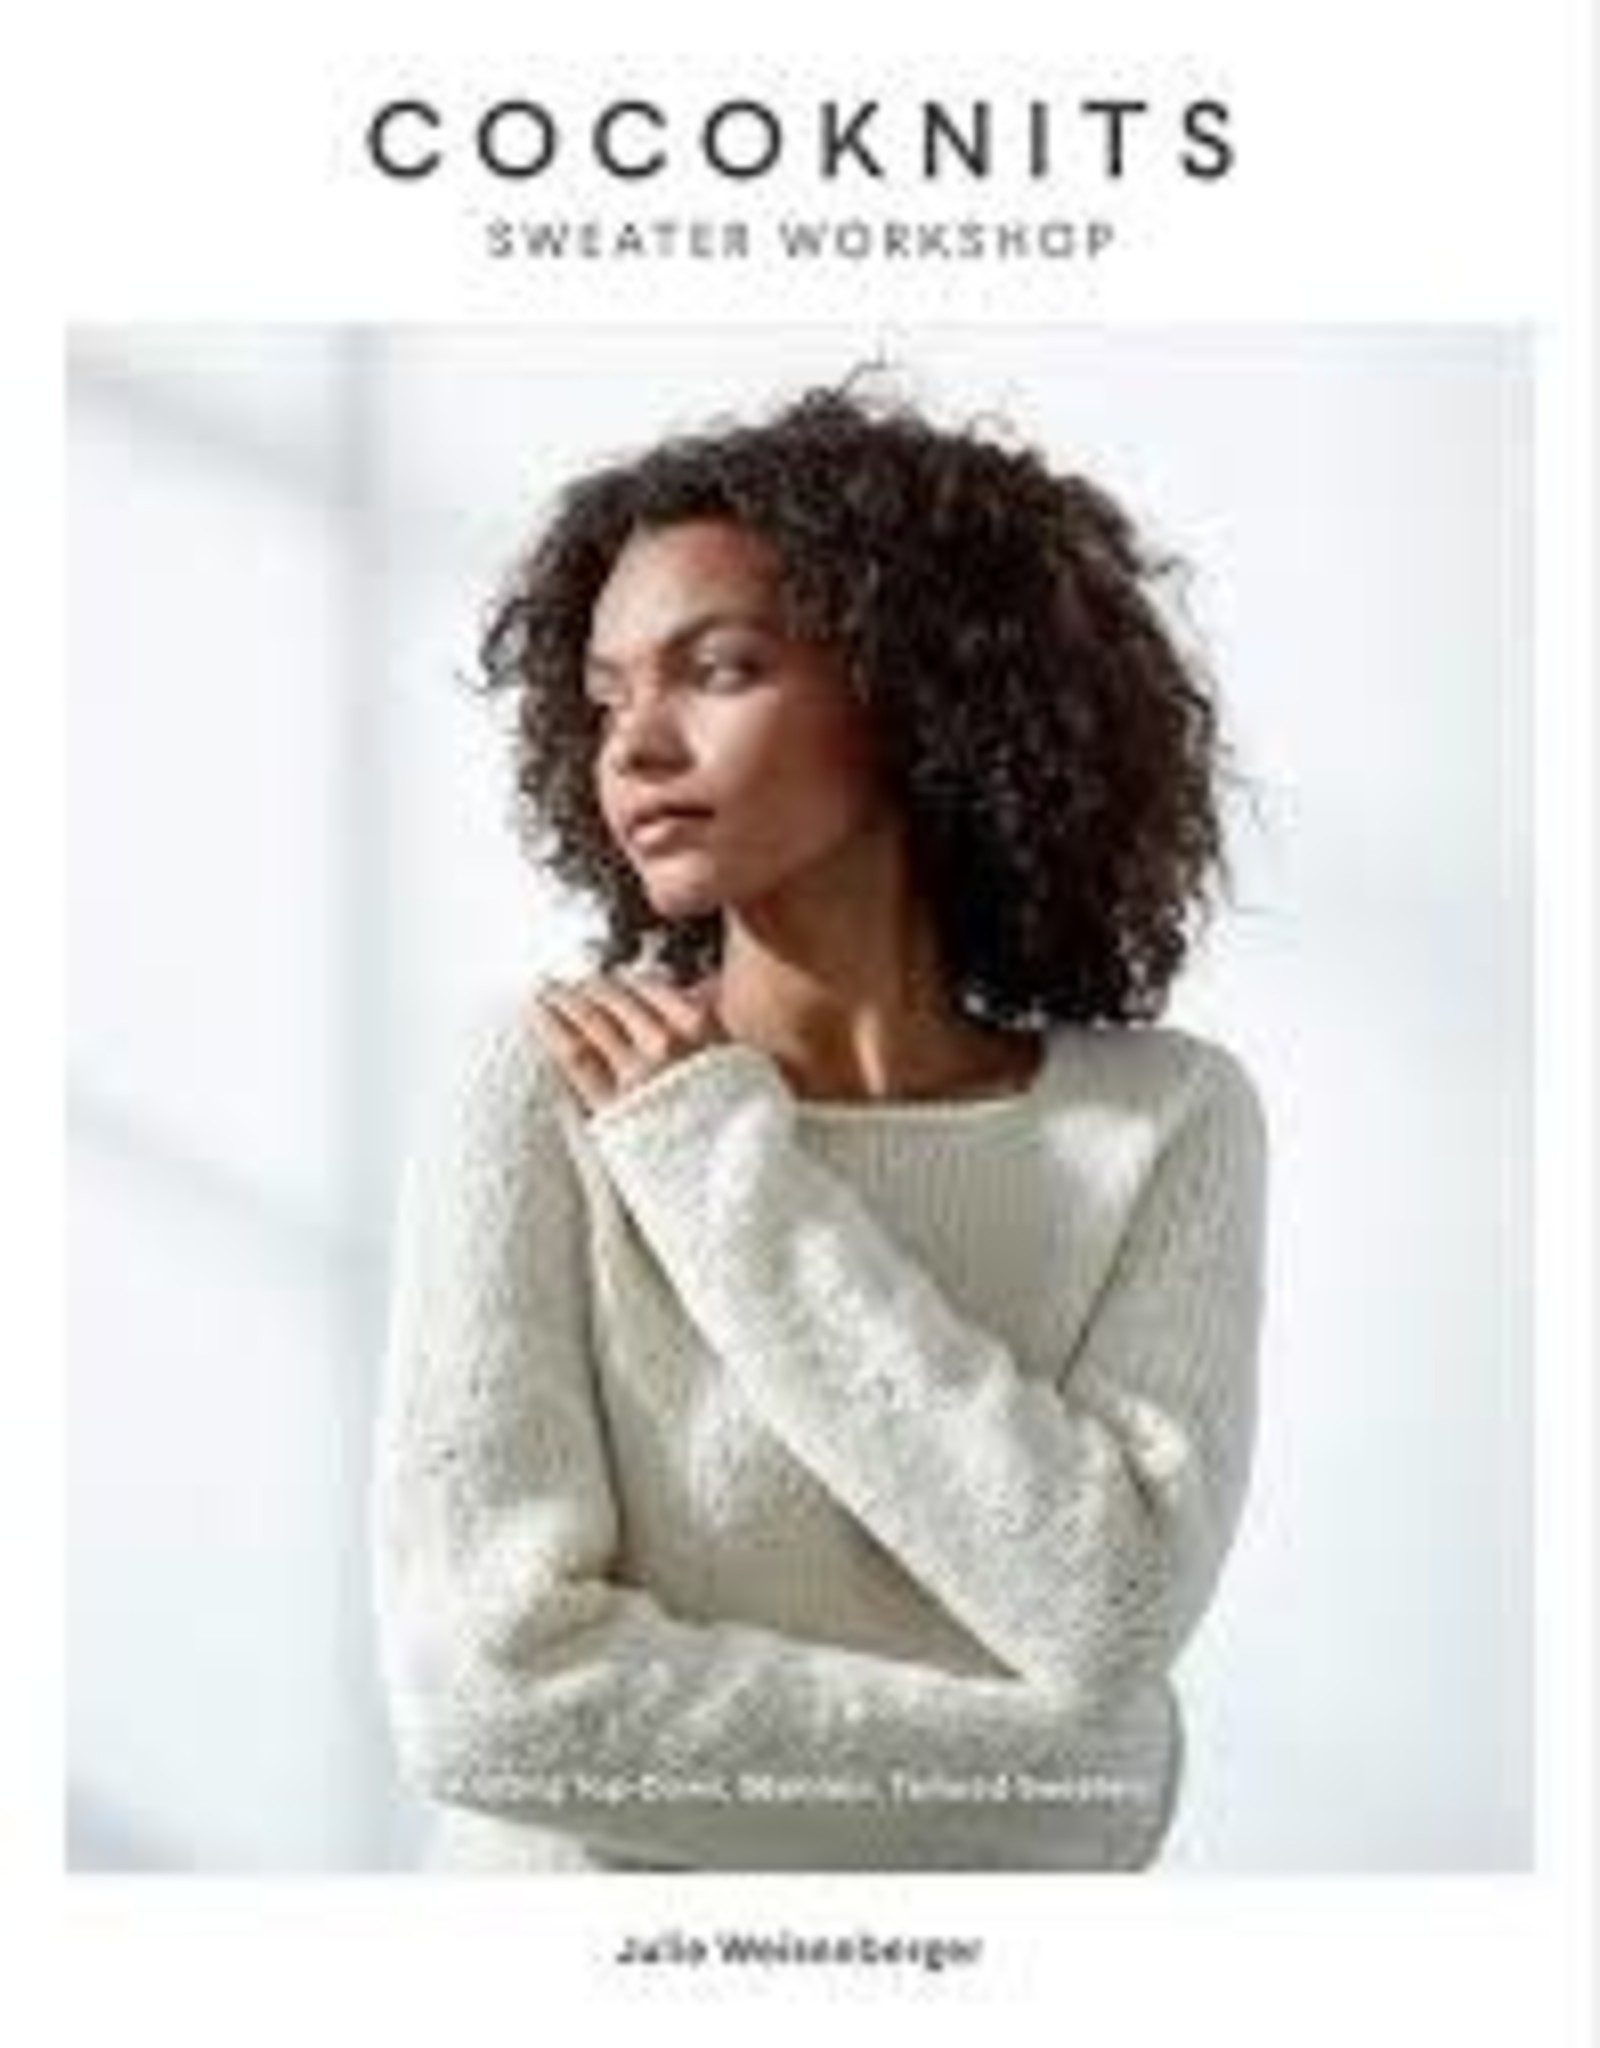 Book - Cocoknits Sweater Workshop by Julie Weisenberger